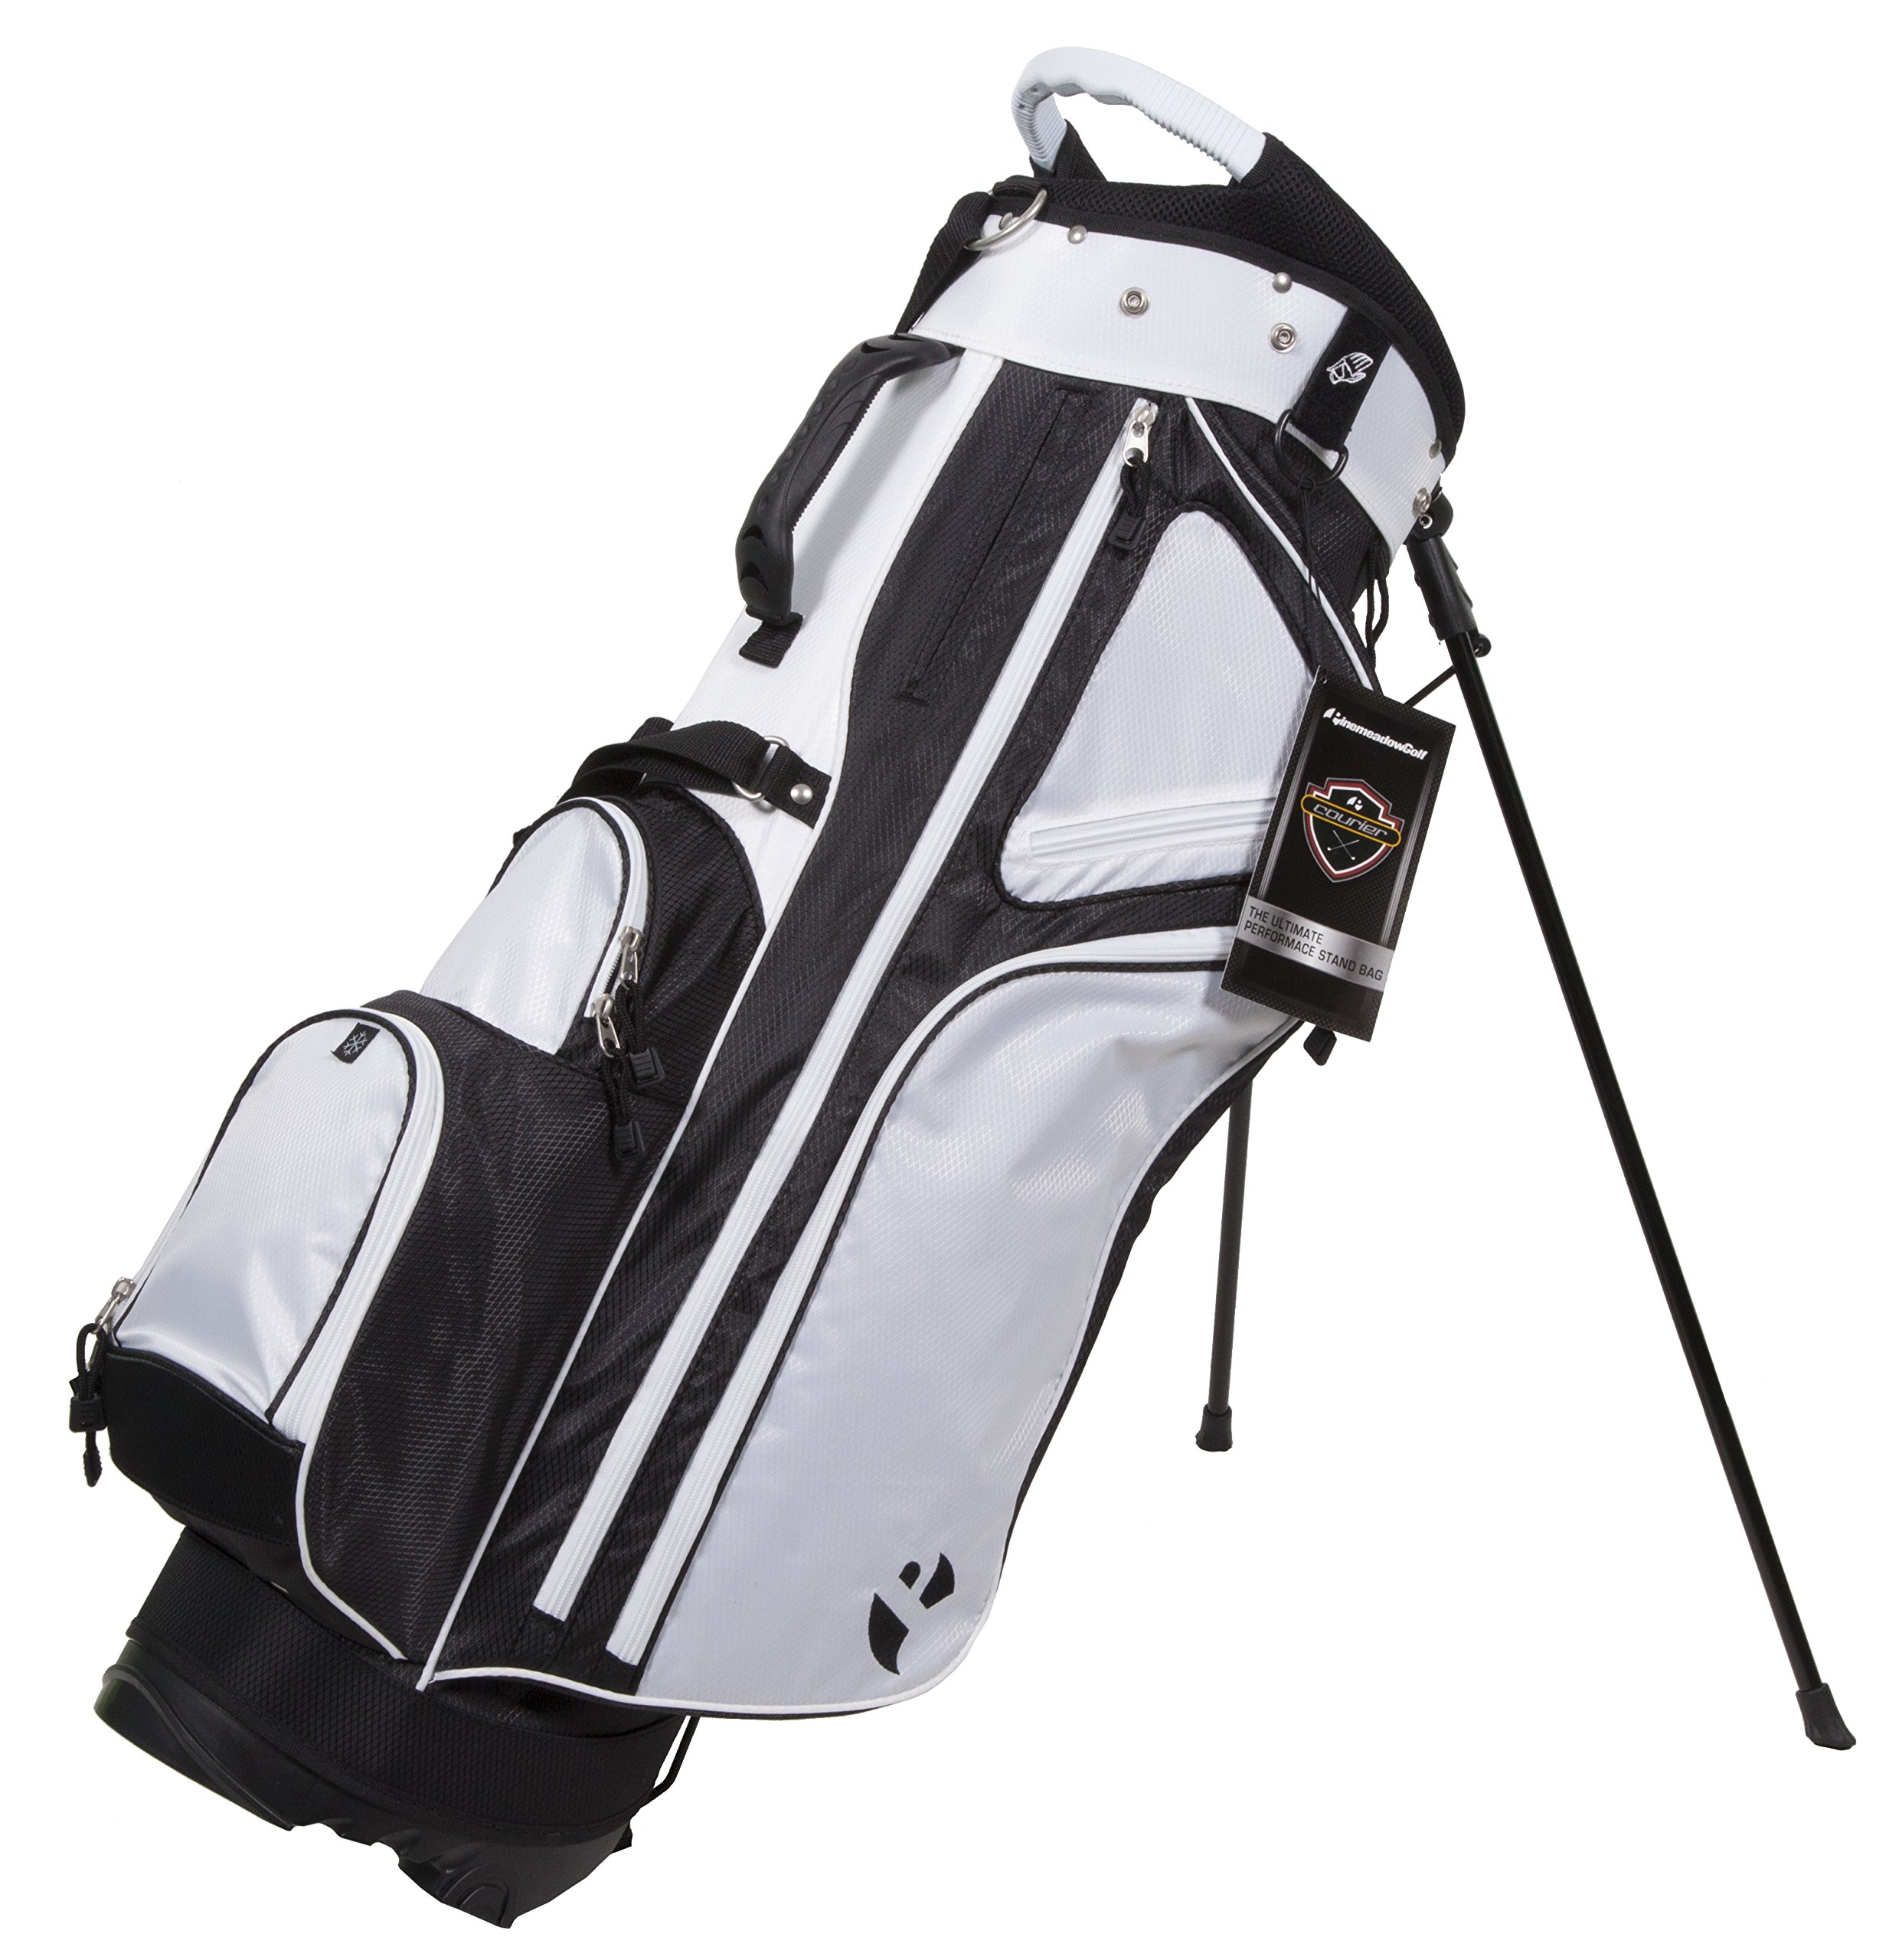 Pinemeadow Golf Courier 3.0 Stand Bag, Black/White